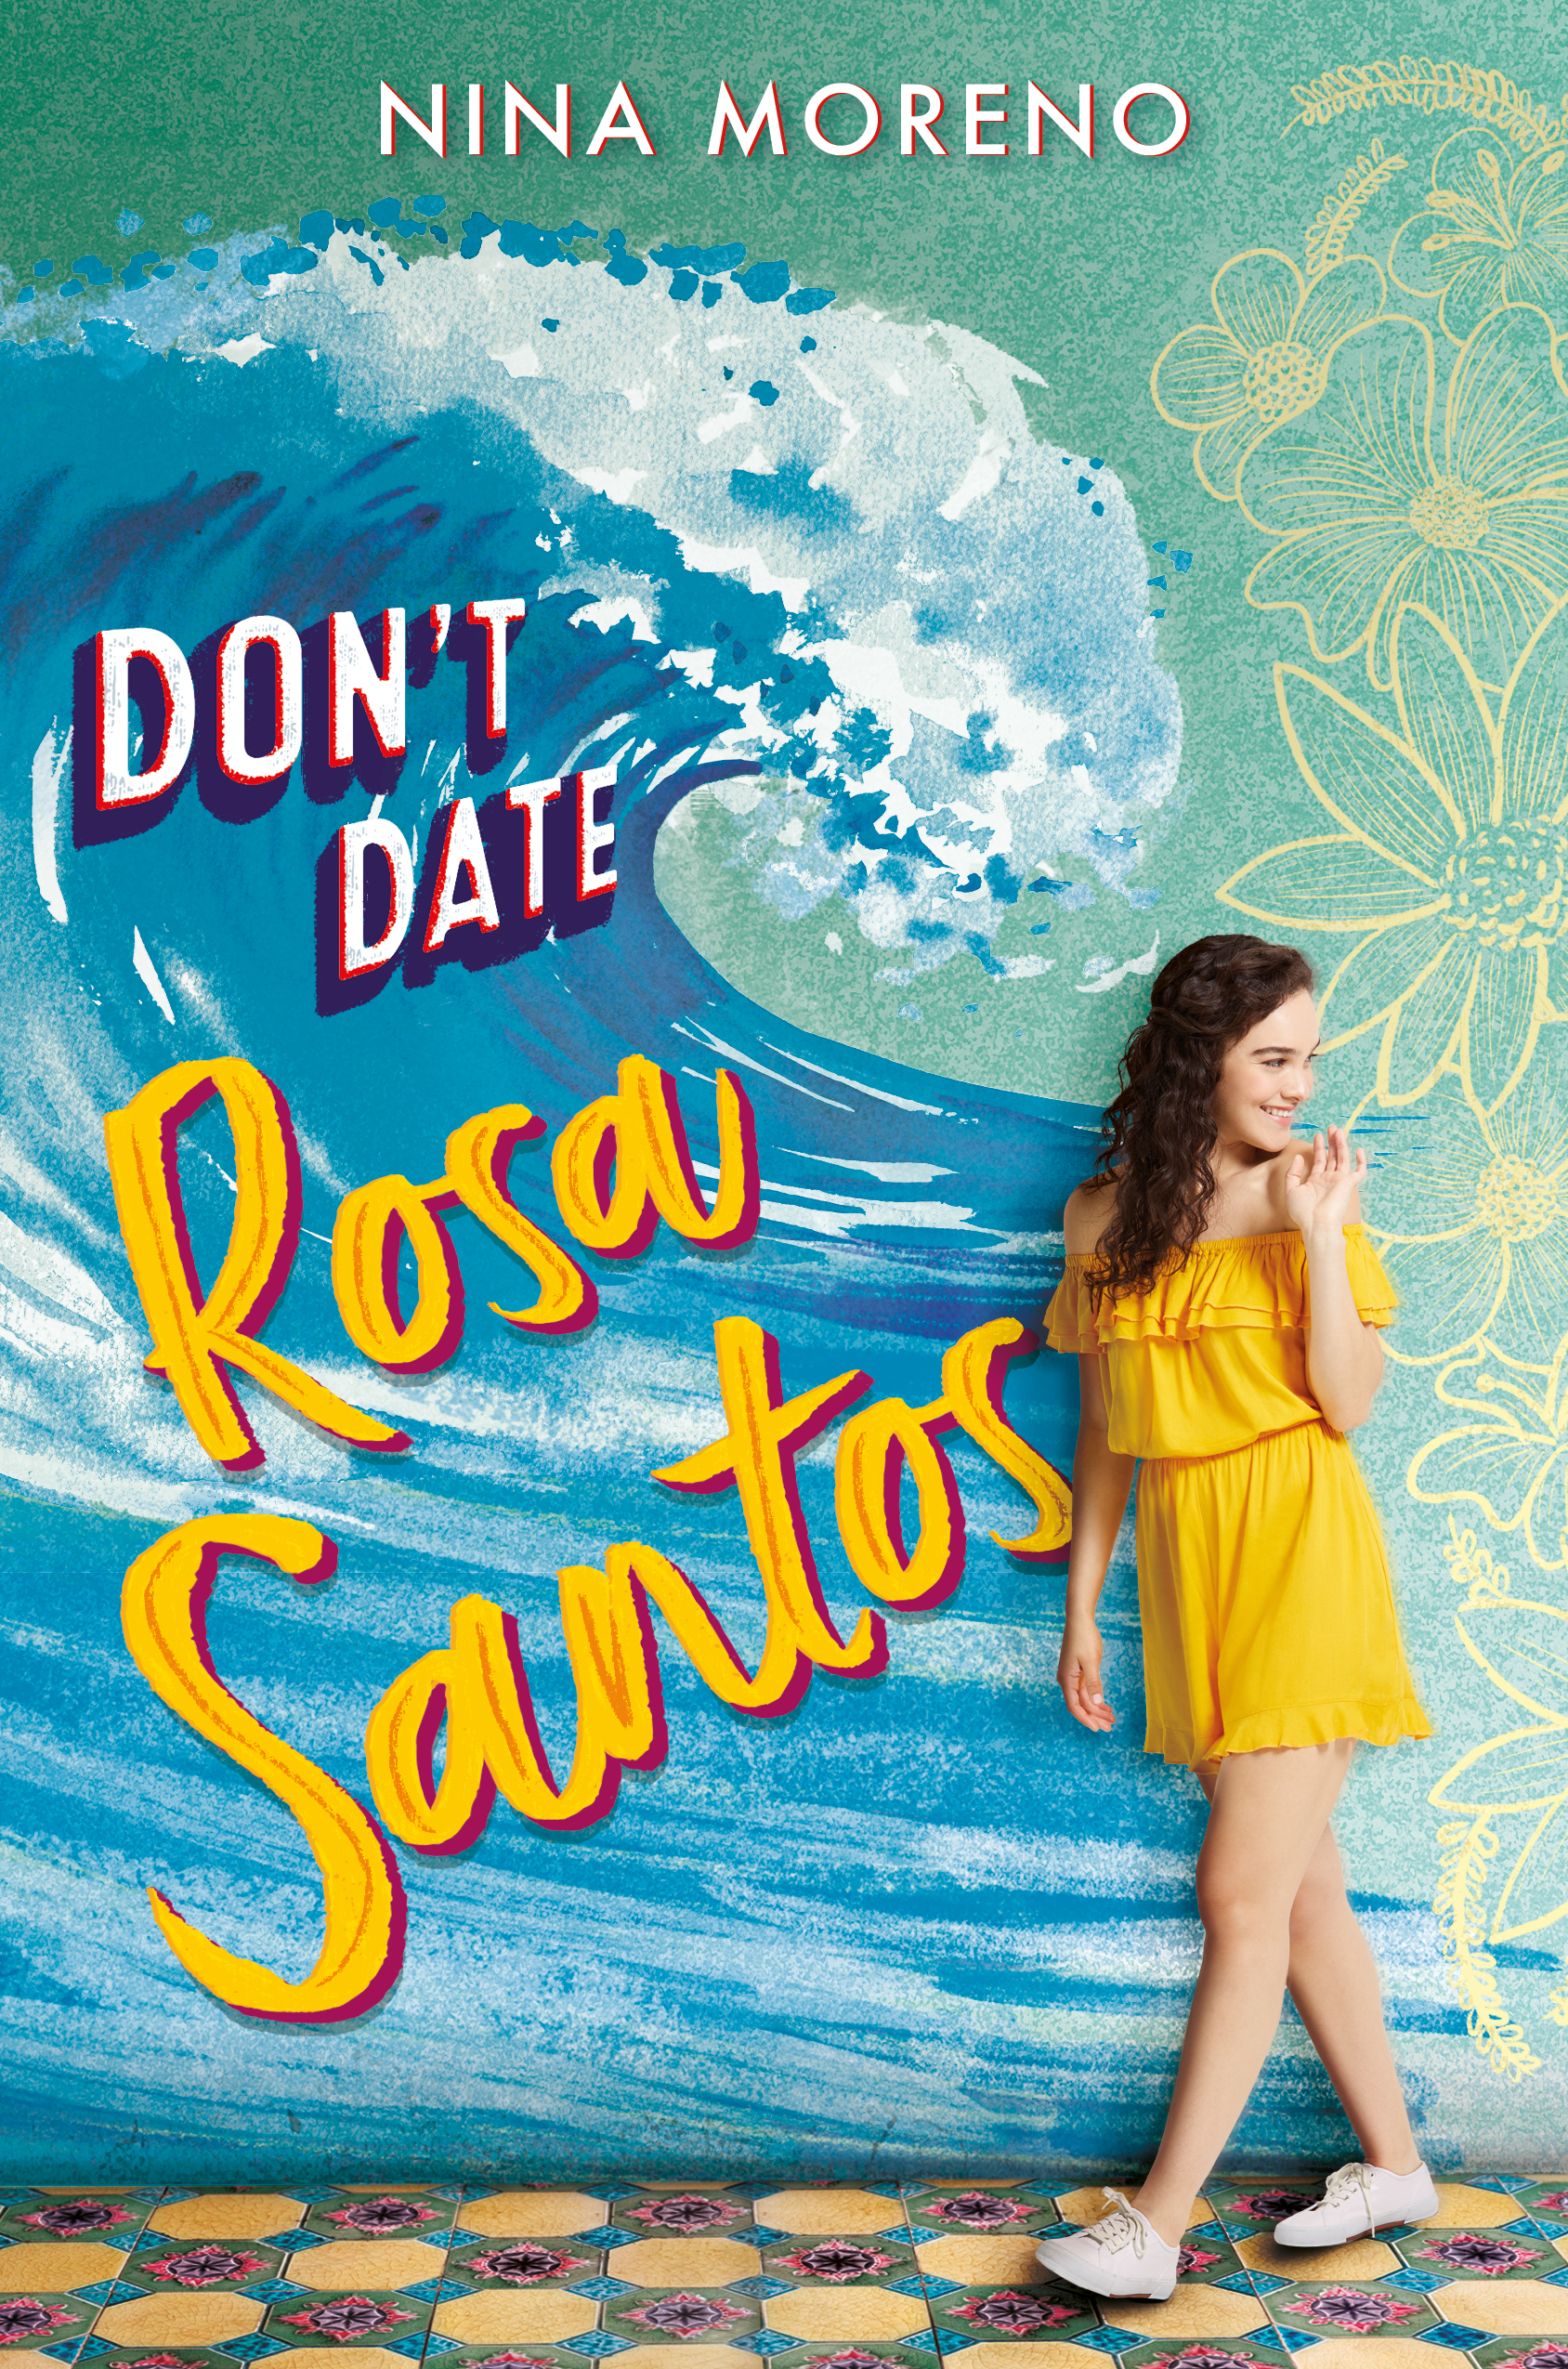 Don't Date Rosa Santos book cover